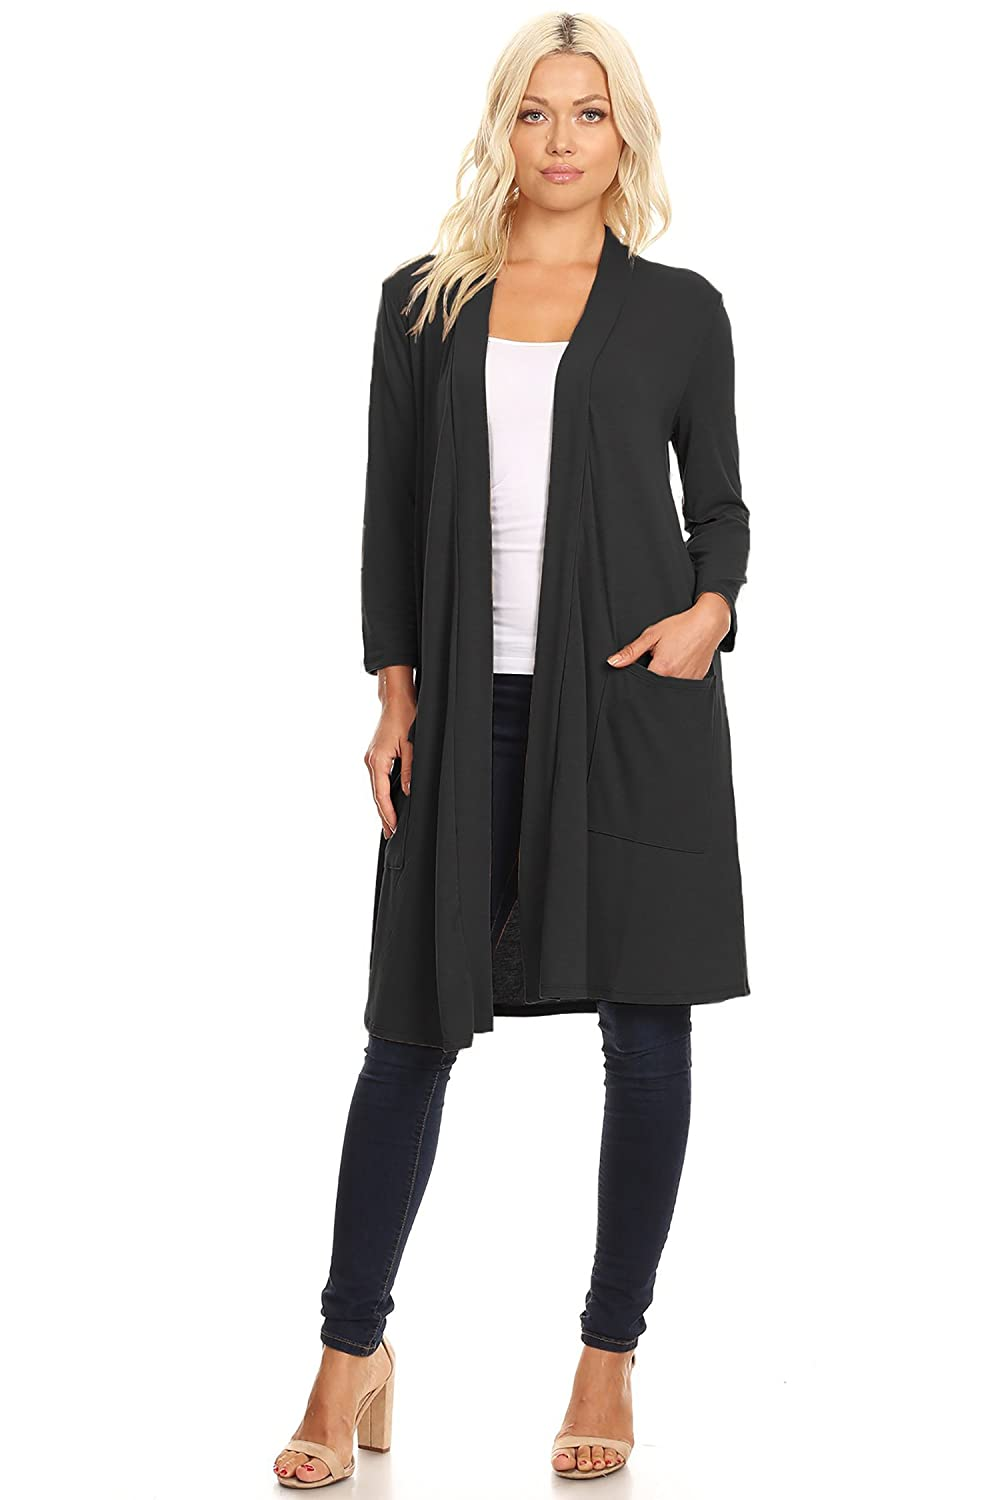 Women's Casual Lightweight Loose Pocket Long Body Solid Knit Cardigan